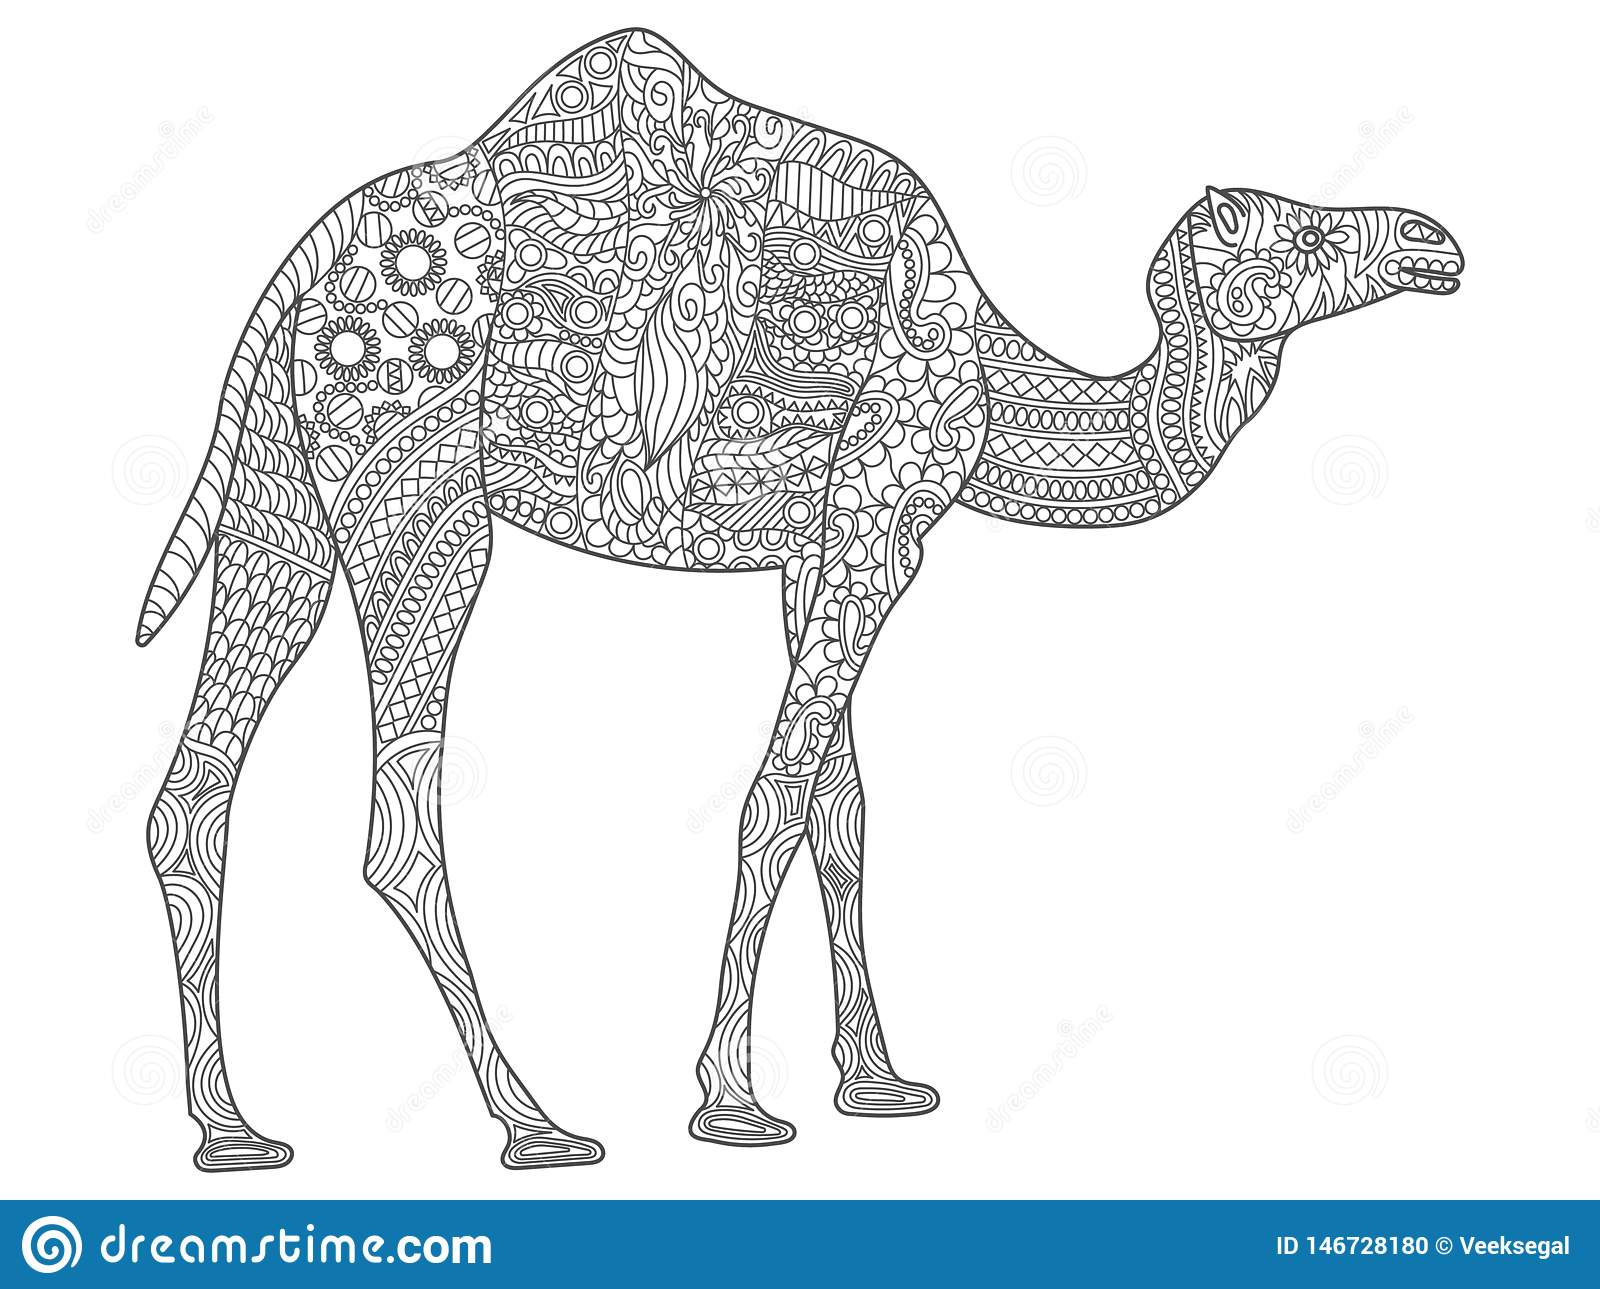 Dromedary Camel coloring page | Free Printable Coloring Pages | 1289x1600